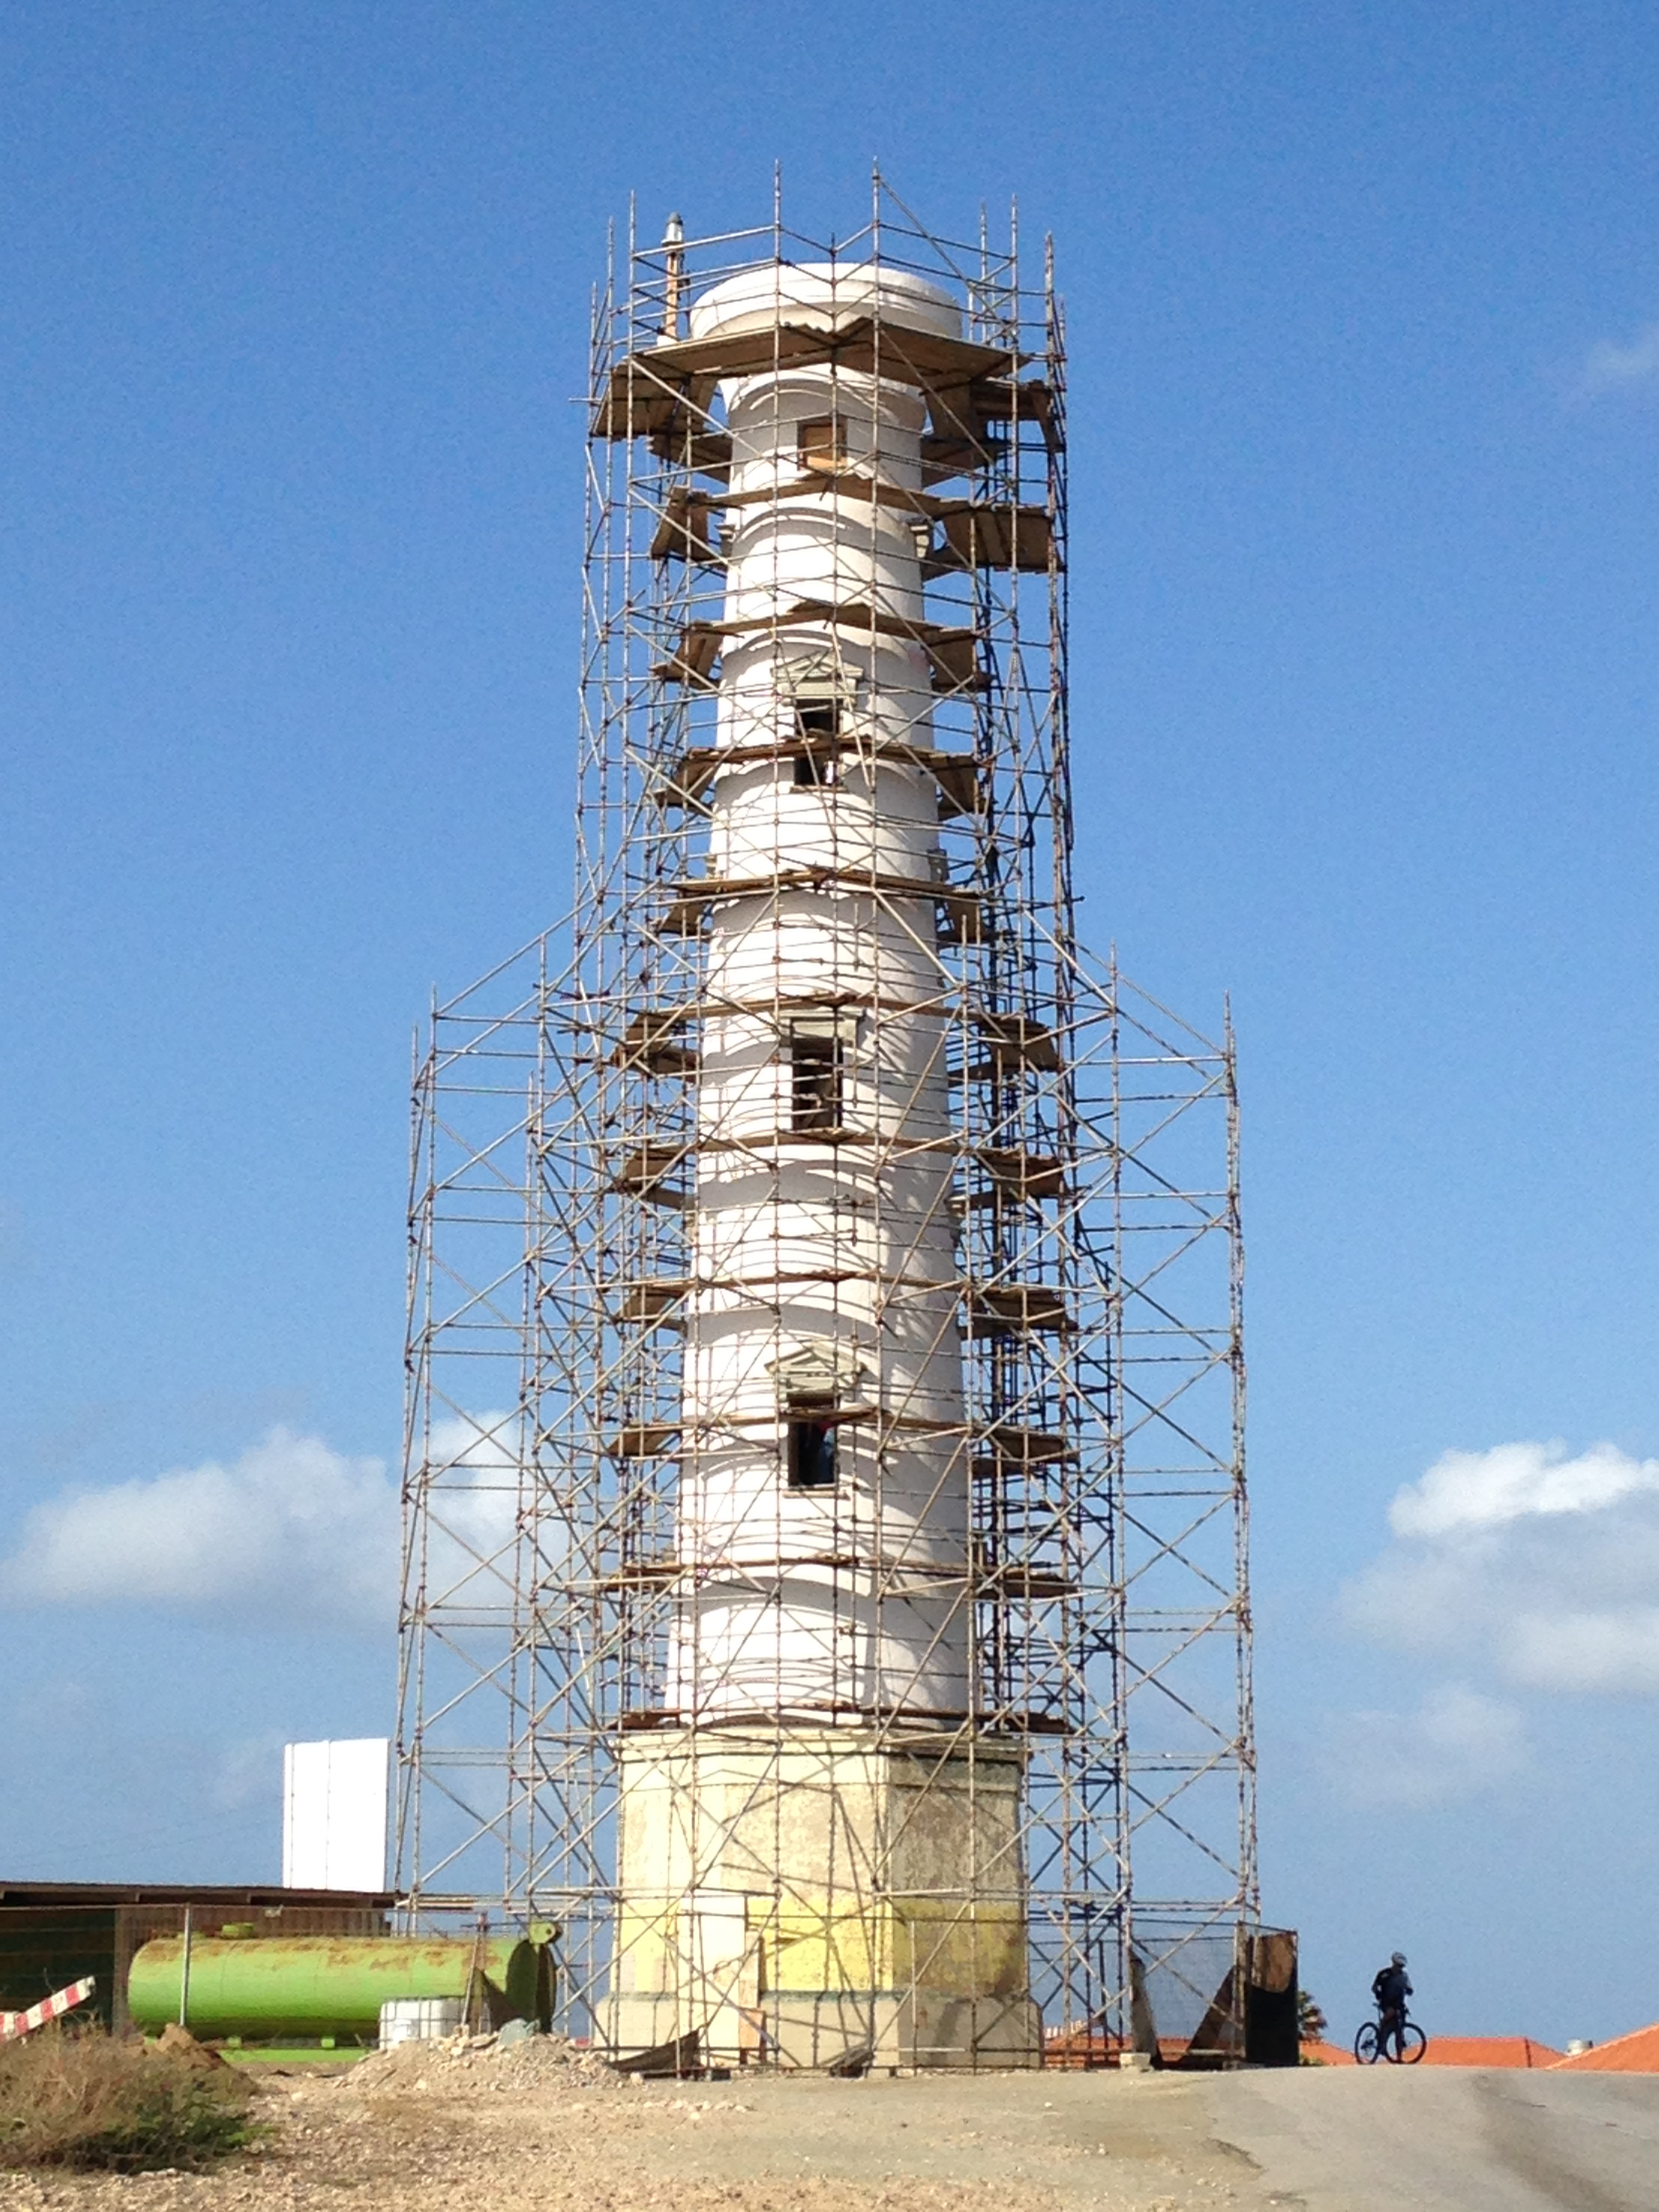 Restauration work currently going on on the California Lighthouse